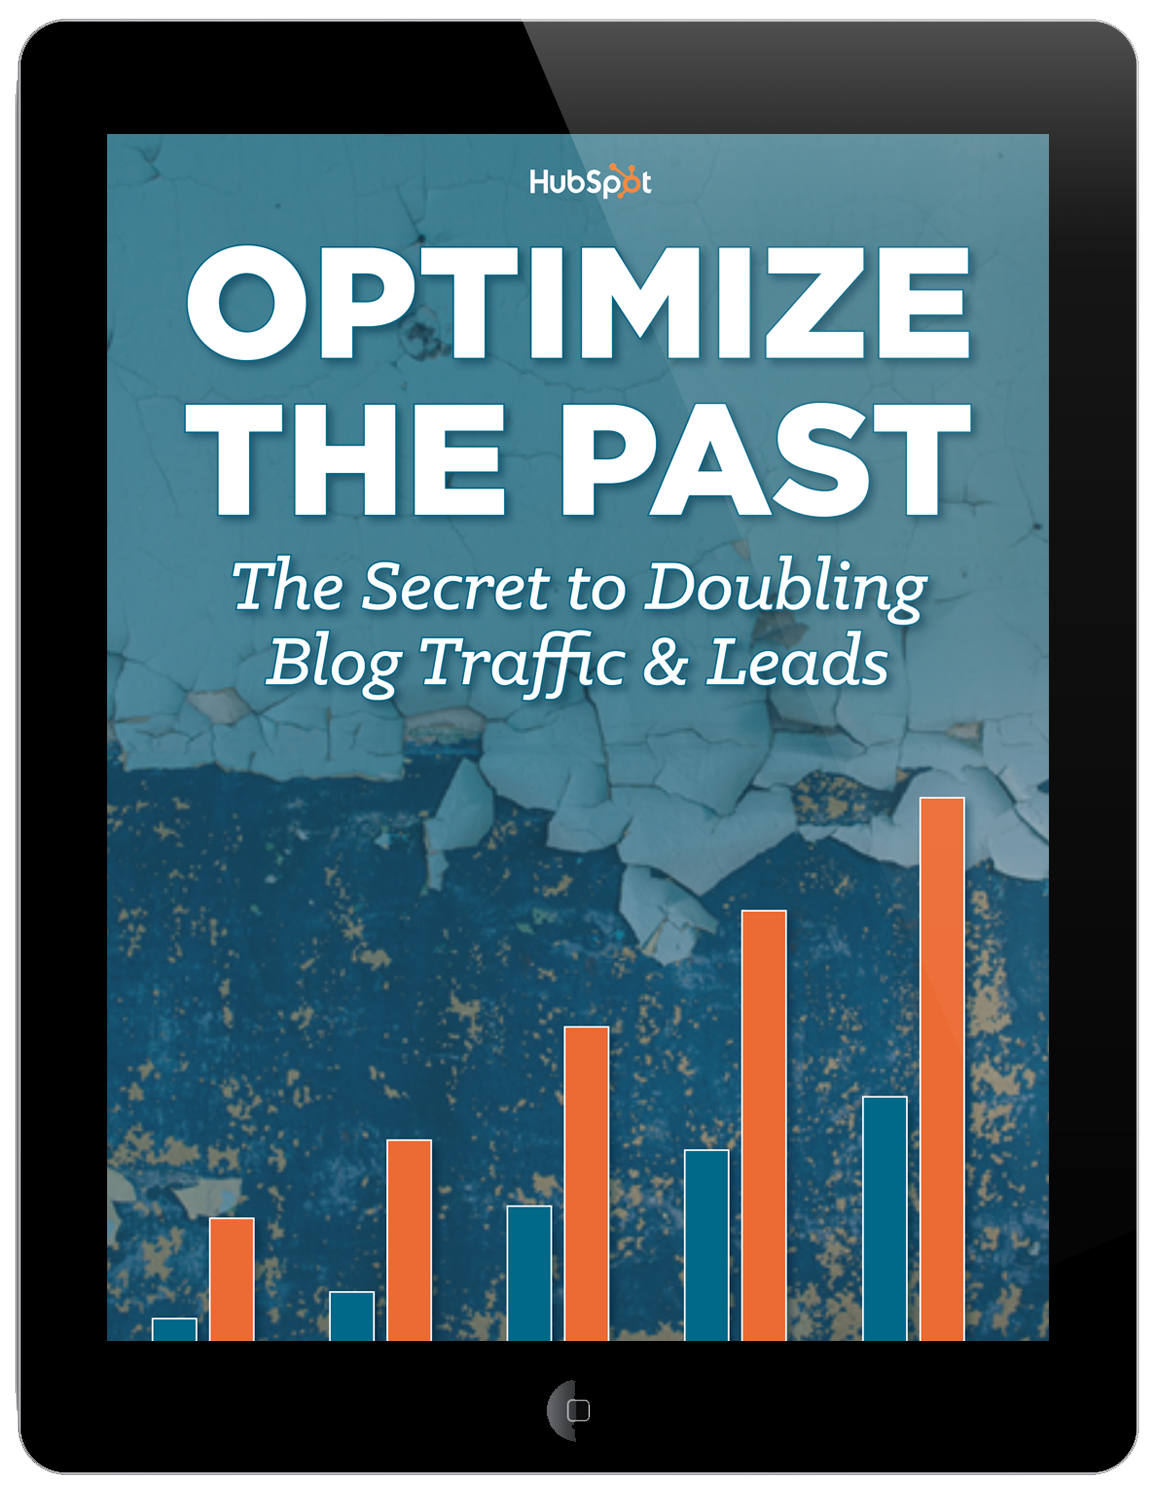 Optimize the Past: The Secret to Doubling Blog Traffic & Leads